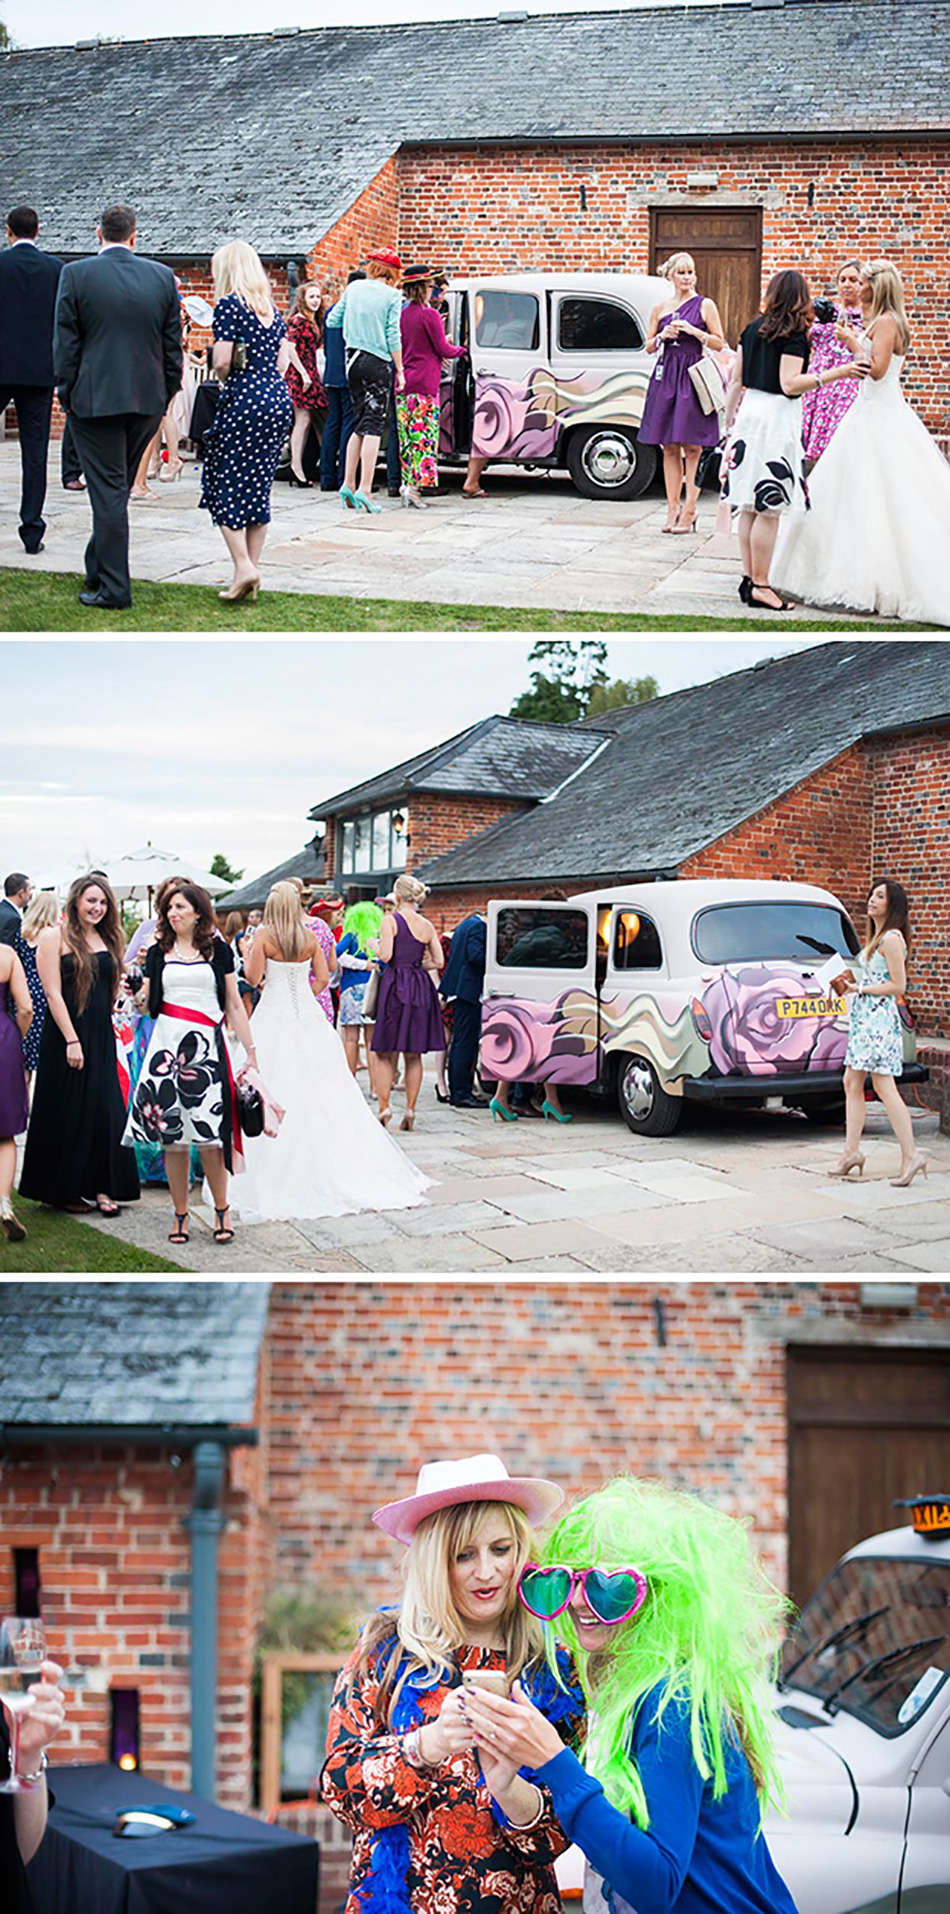 Entertaining your wedding guests outside - photo booth fun